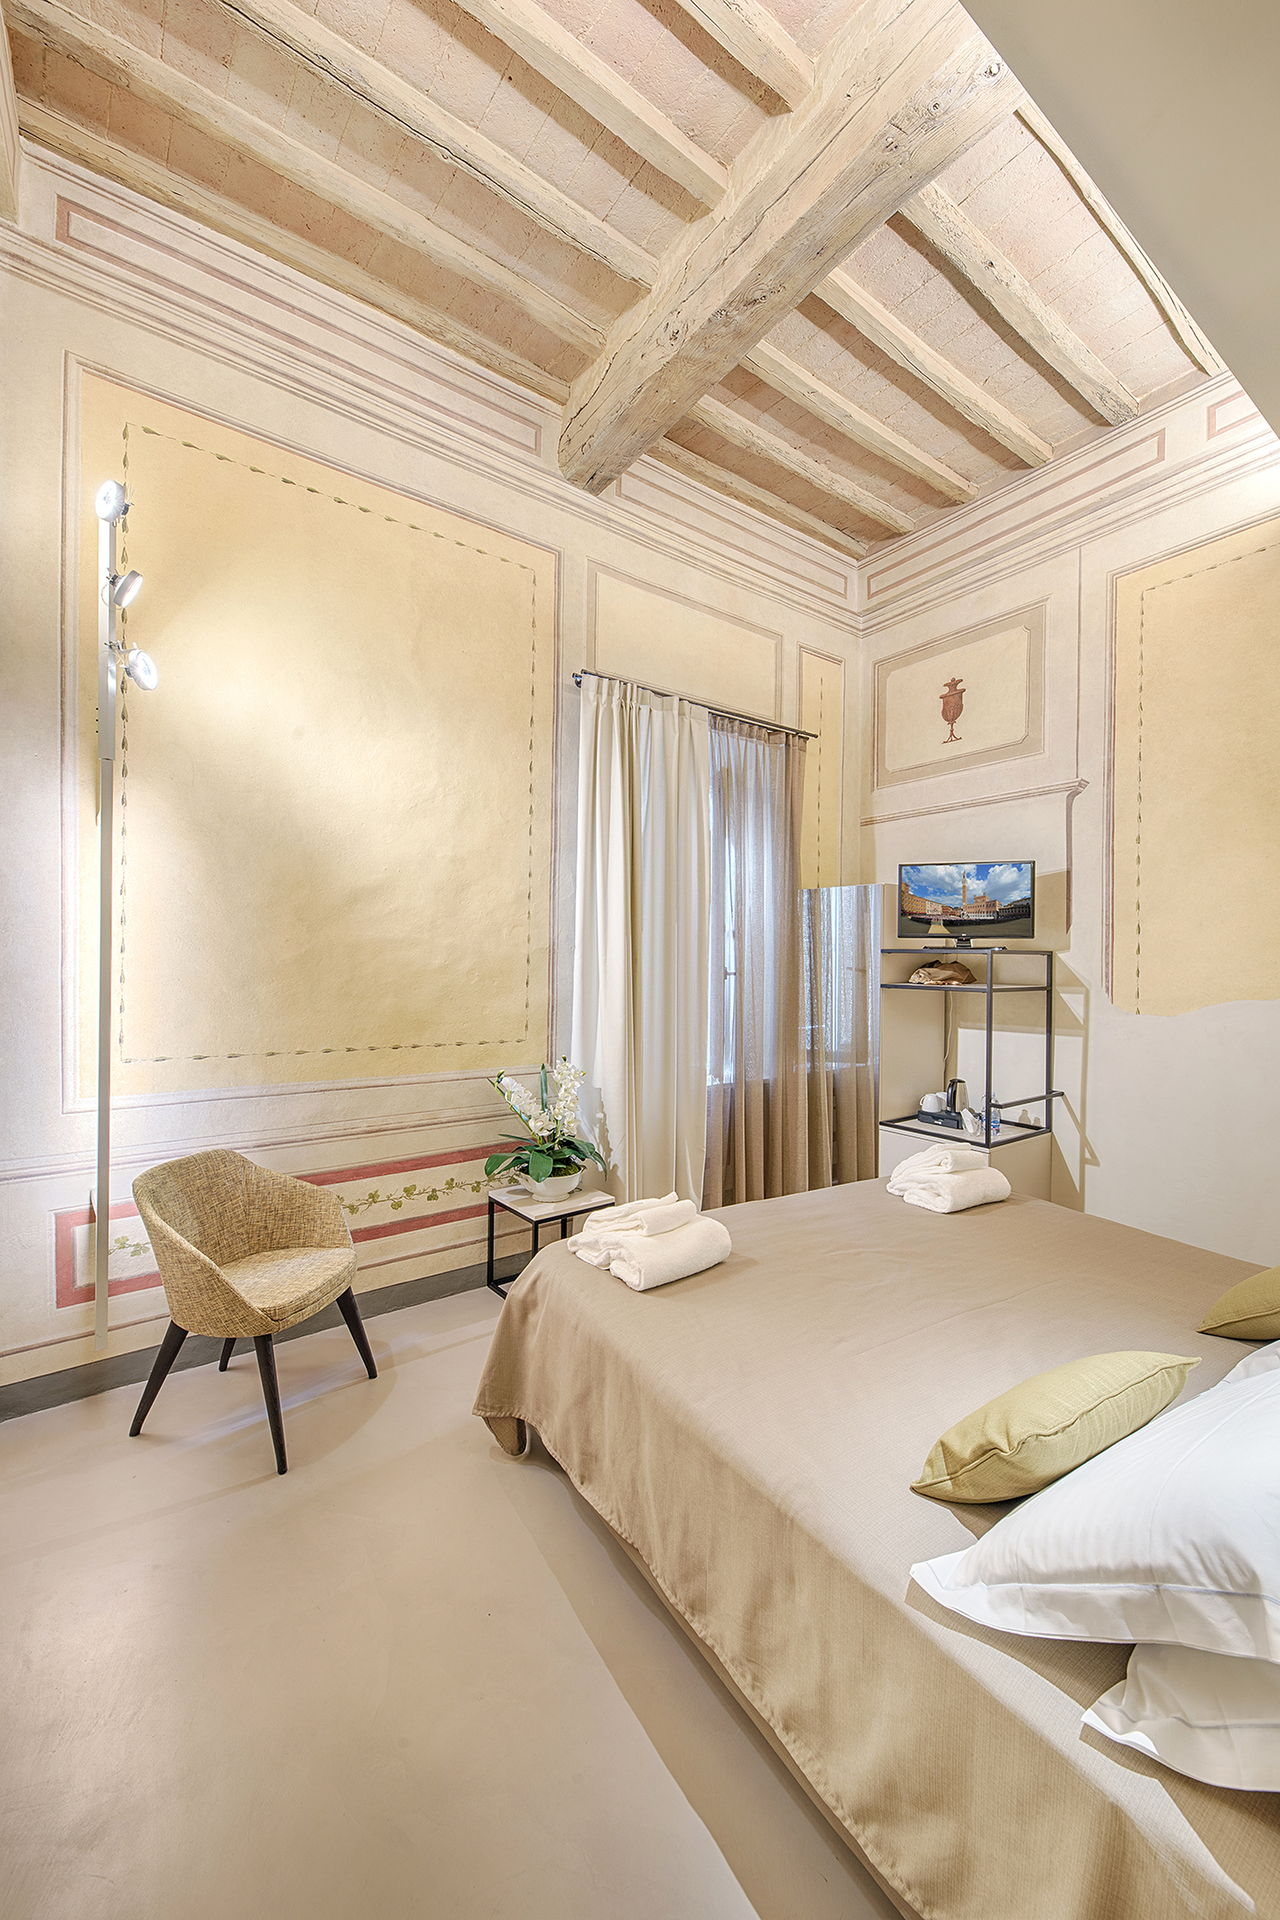 Residenza d'epoca Le Aquile - Bed and Breakfast luxury nel centro di Siena - le anfore 3